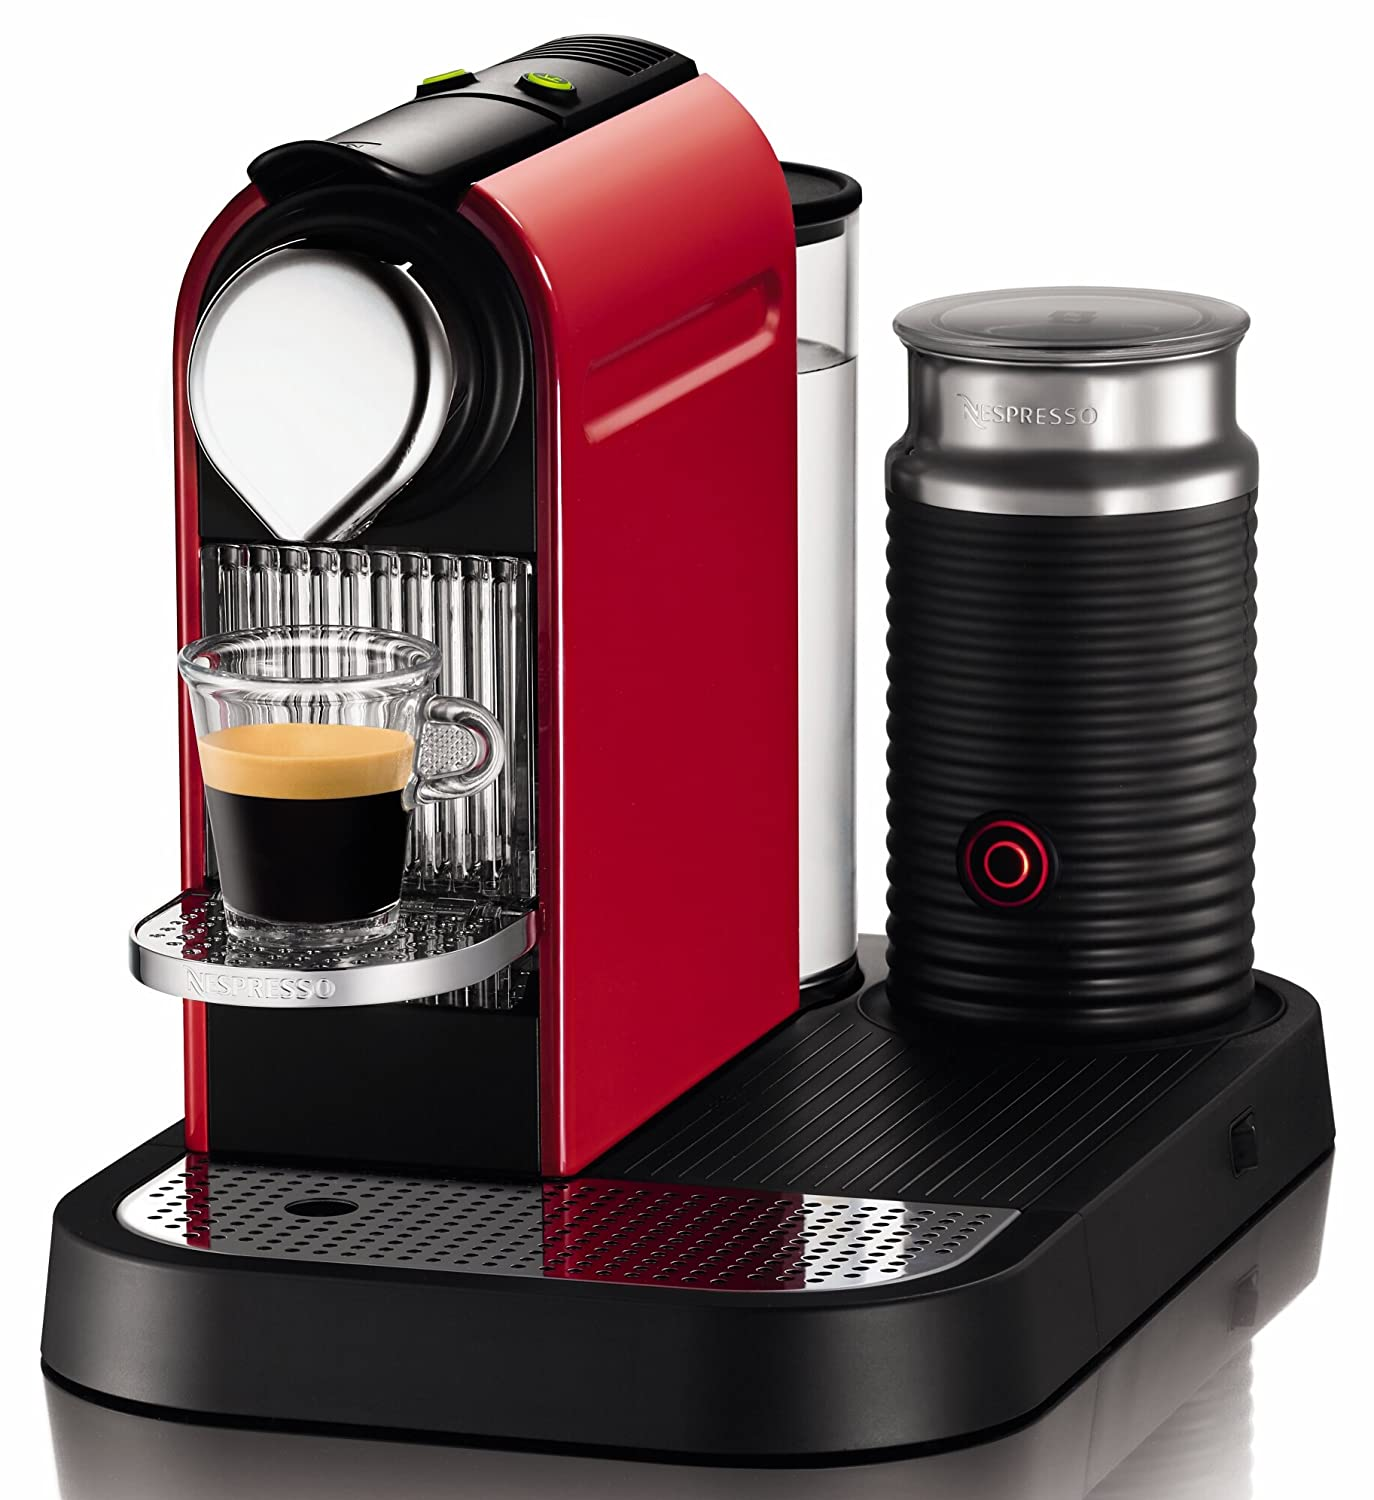 Nespresso C120-US-RE-NE CitiZ Automatic Single Serve Espresso Maker and Milk Frother